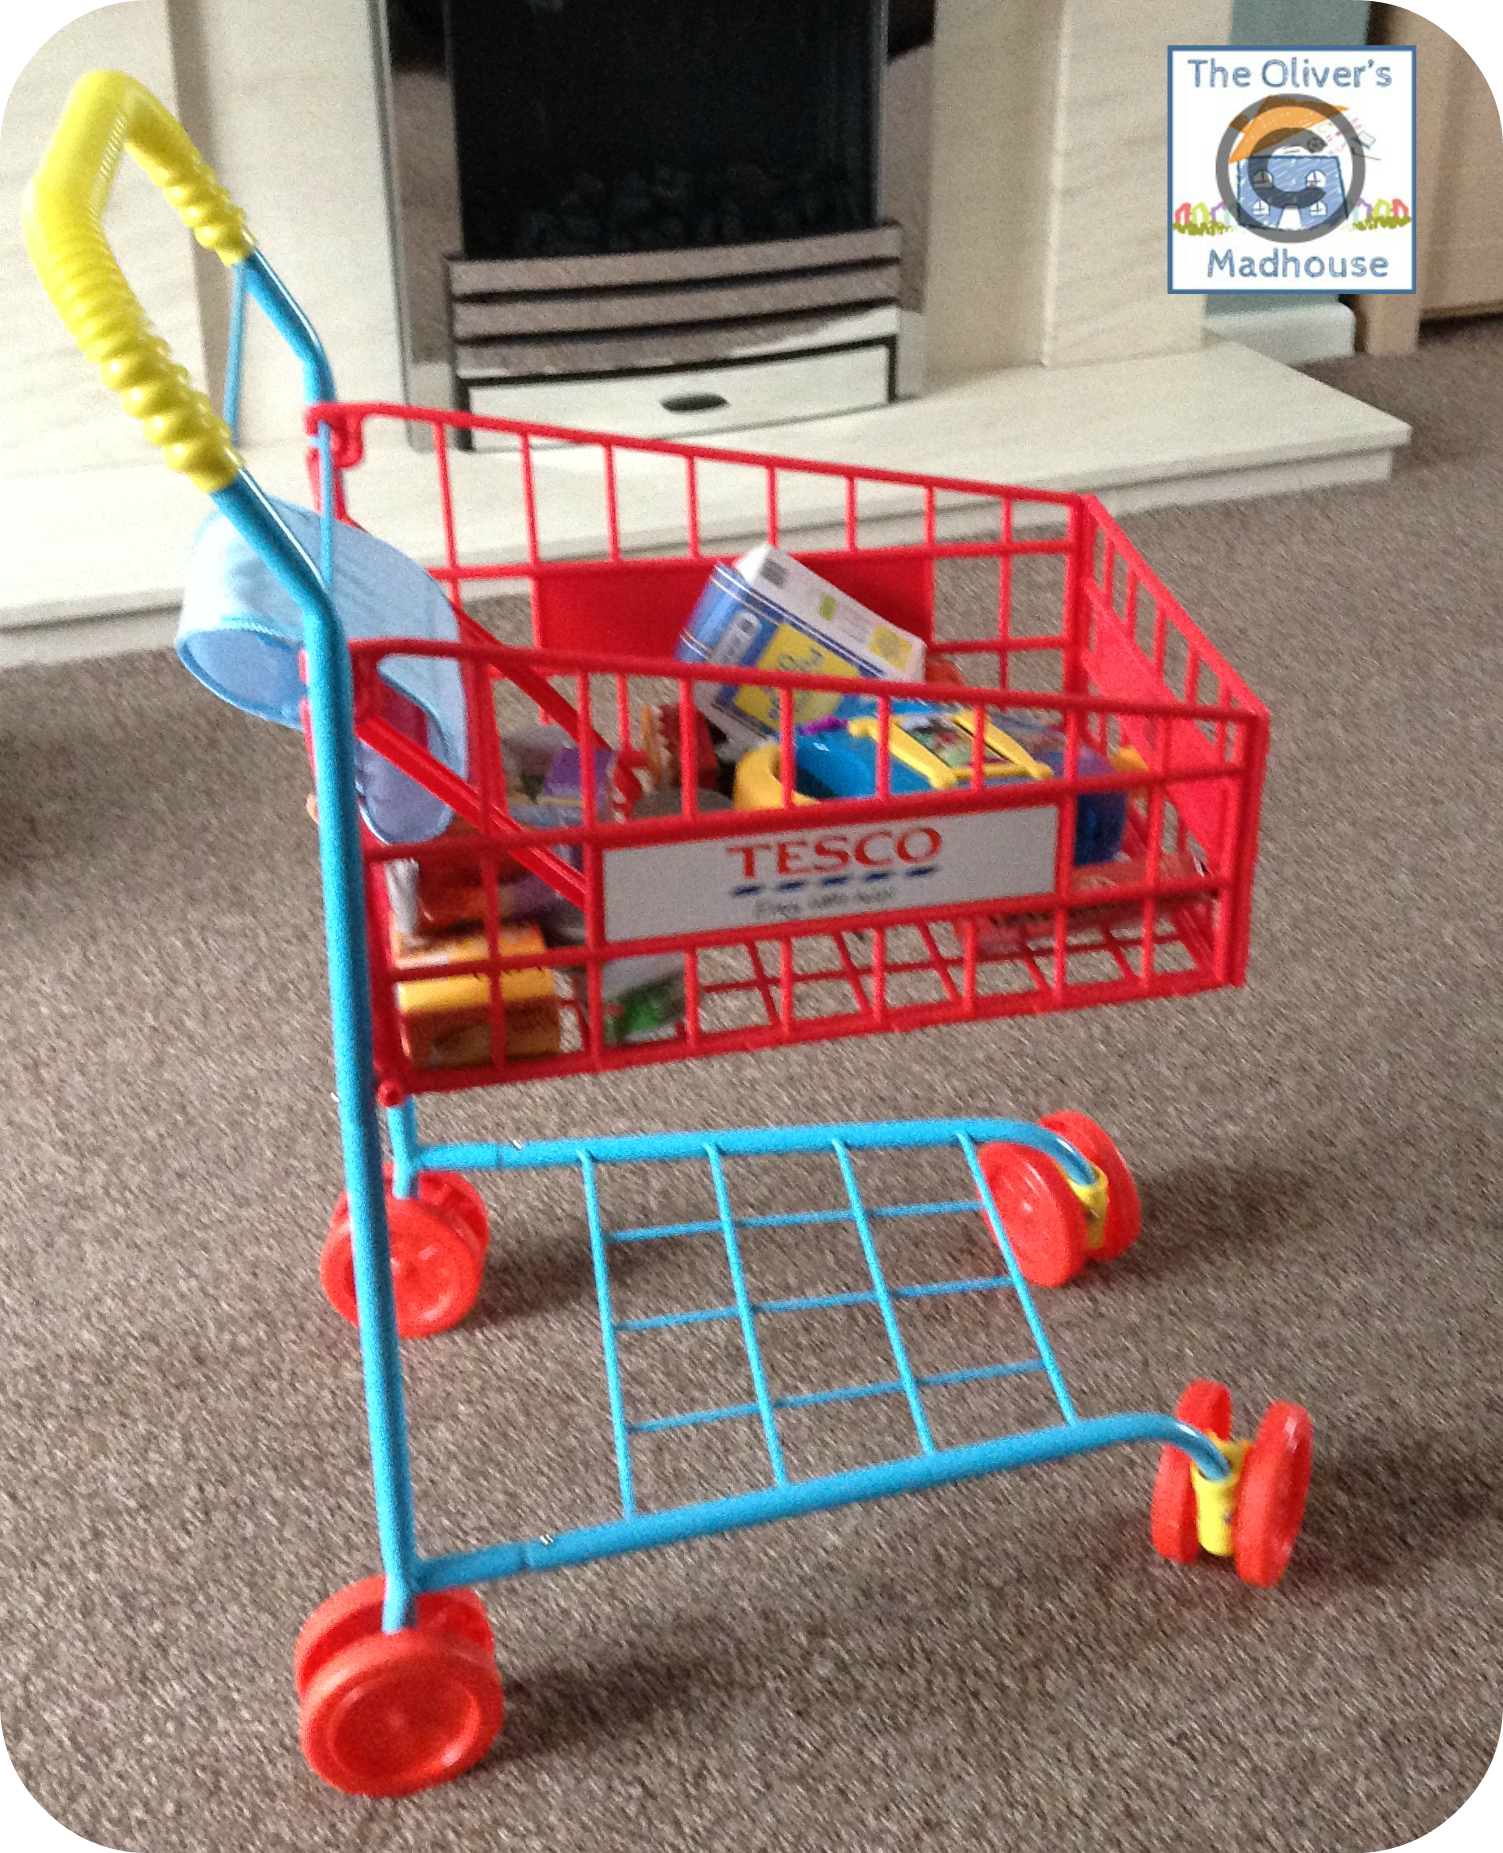 #52LittleThings Week 11 - Head To The Supermarket On A Full Stomach The Oliver\\\'s Madhouse